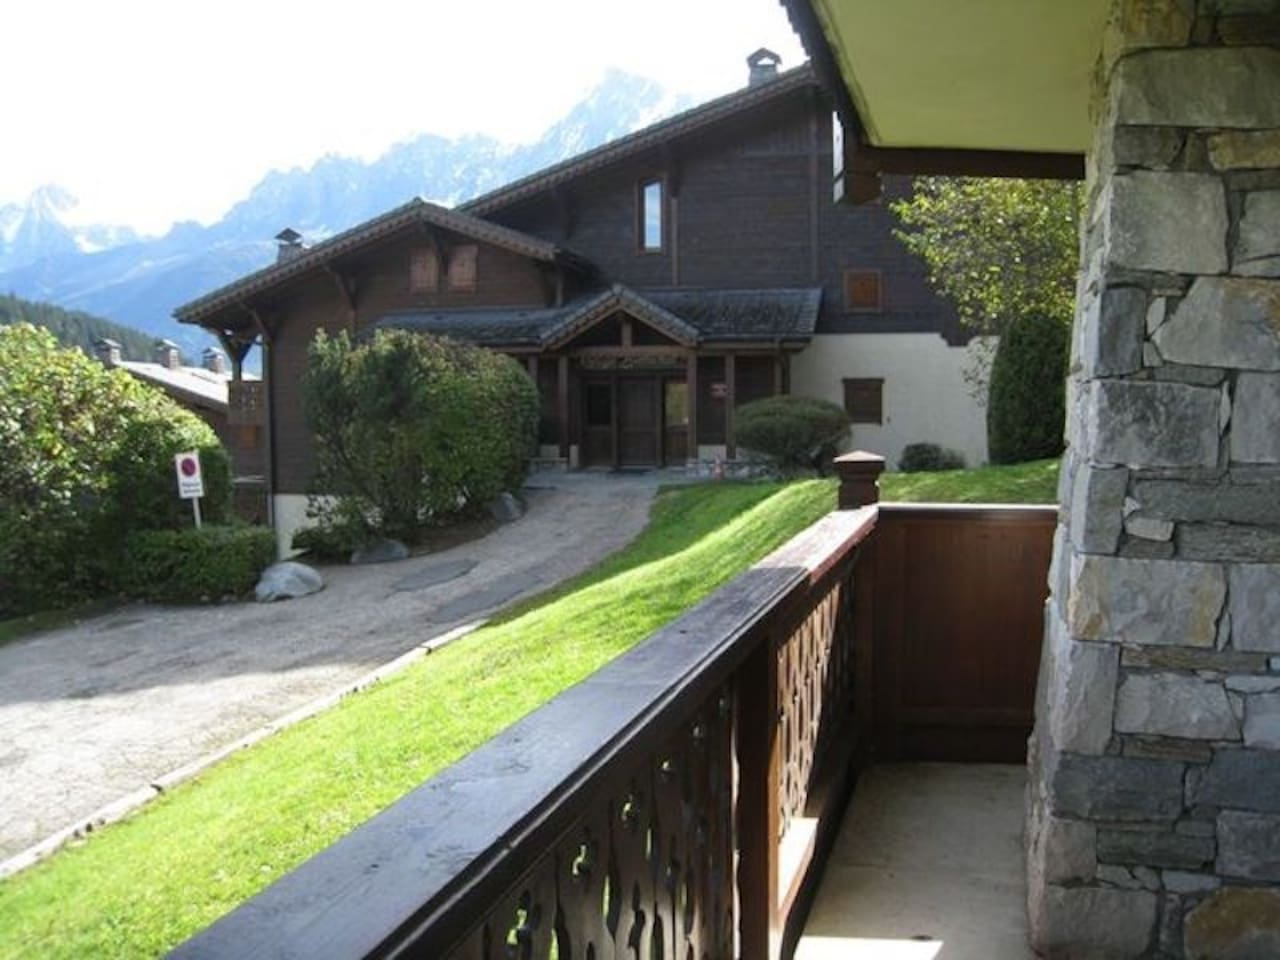 Breathe the fresh mountain air on your private balcony!